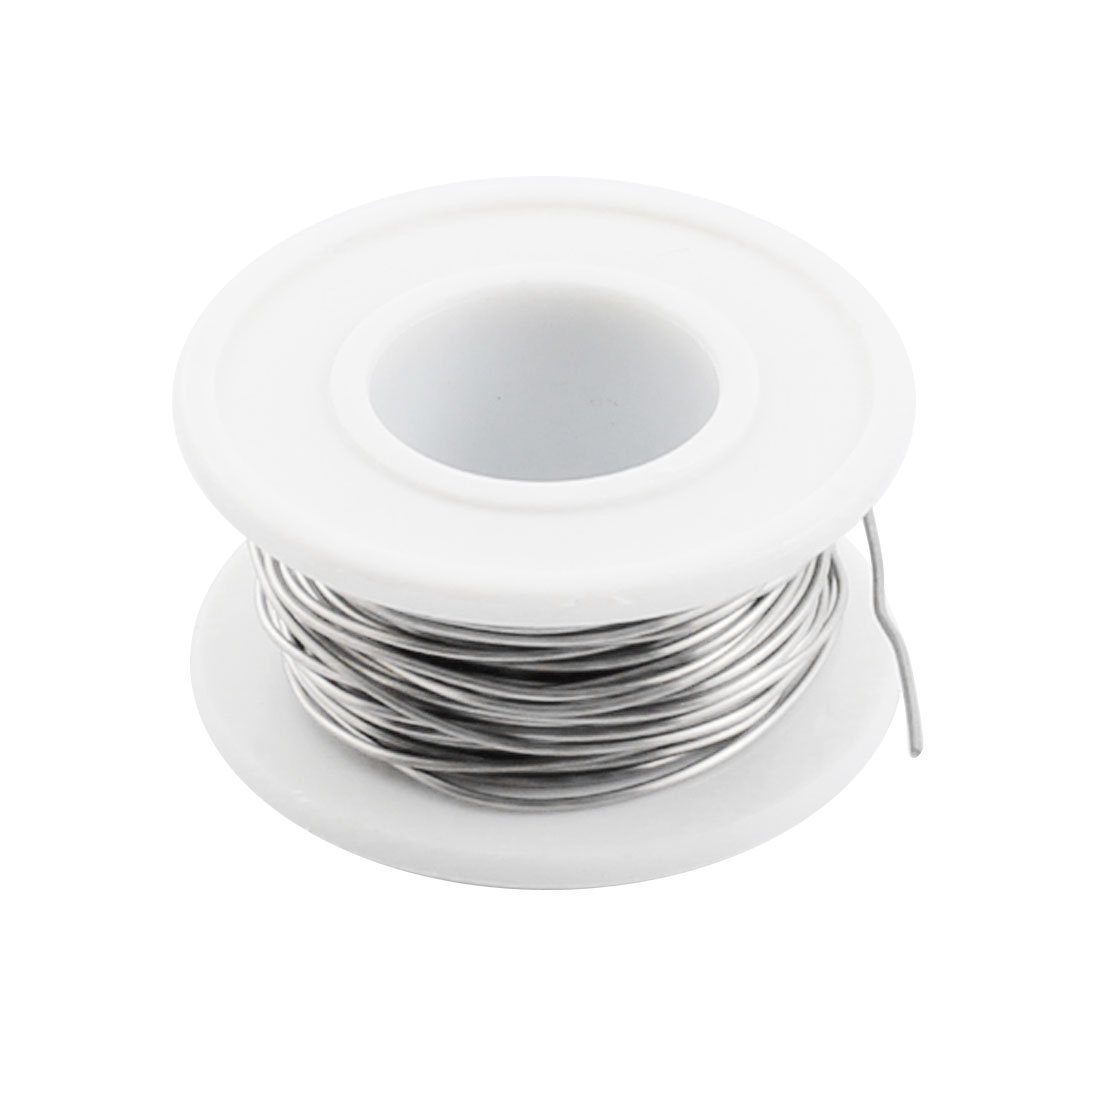 7.5M 25ft Long 0.7mm AWG21 Gauge Nichrome Resistance Resistor Wire Cable for Heating Elements